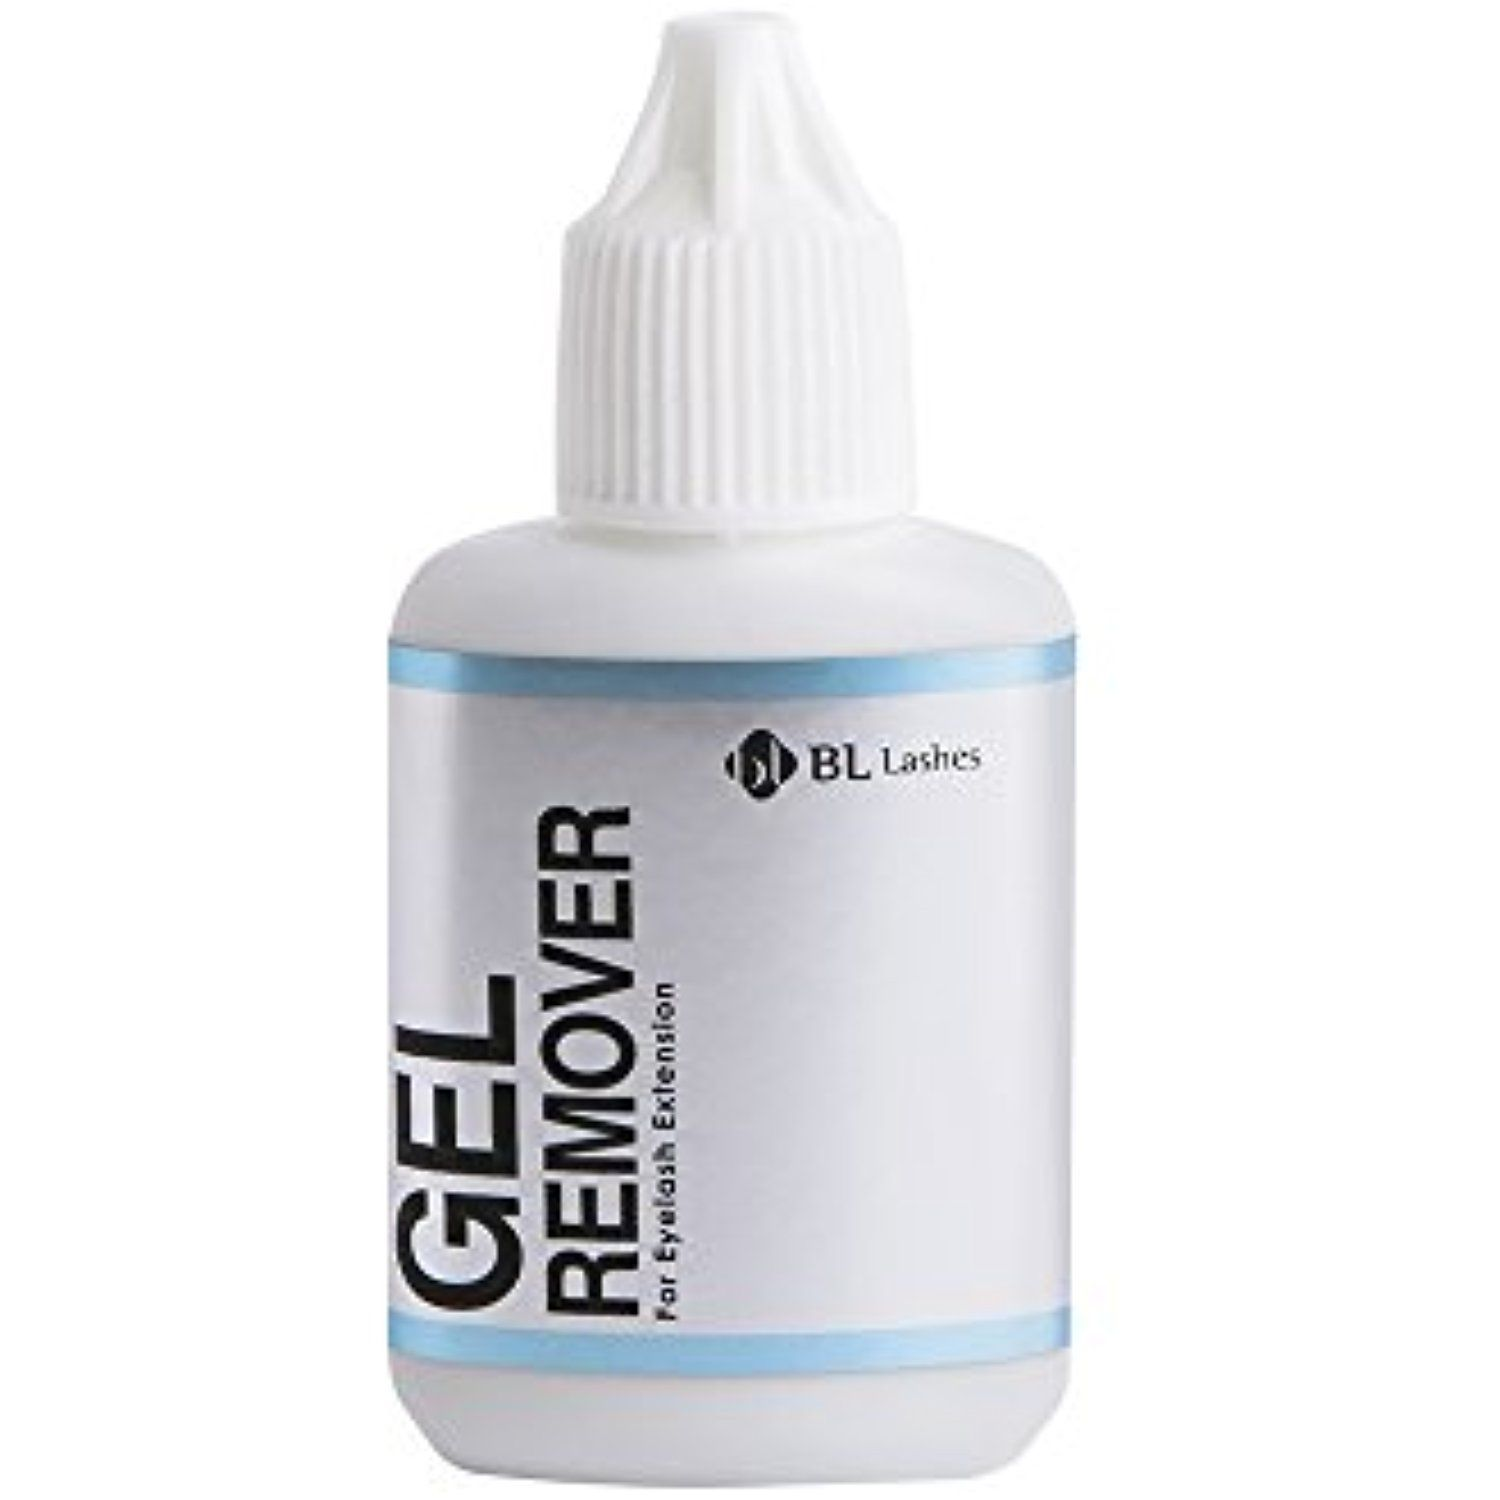 Blink gel remover for eyelash extensions check out